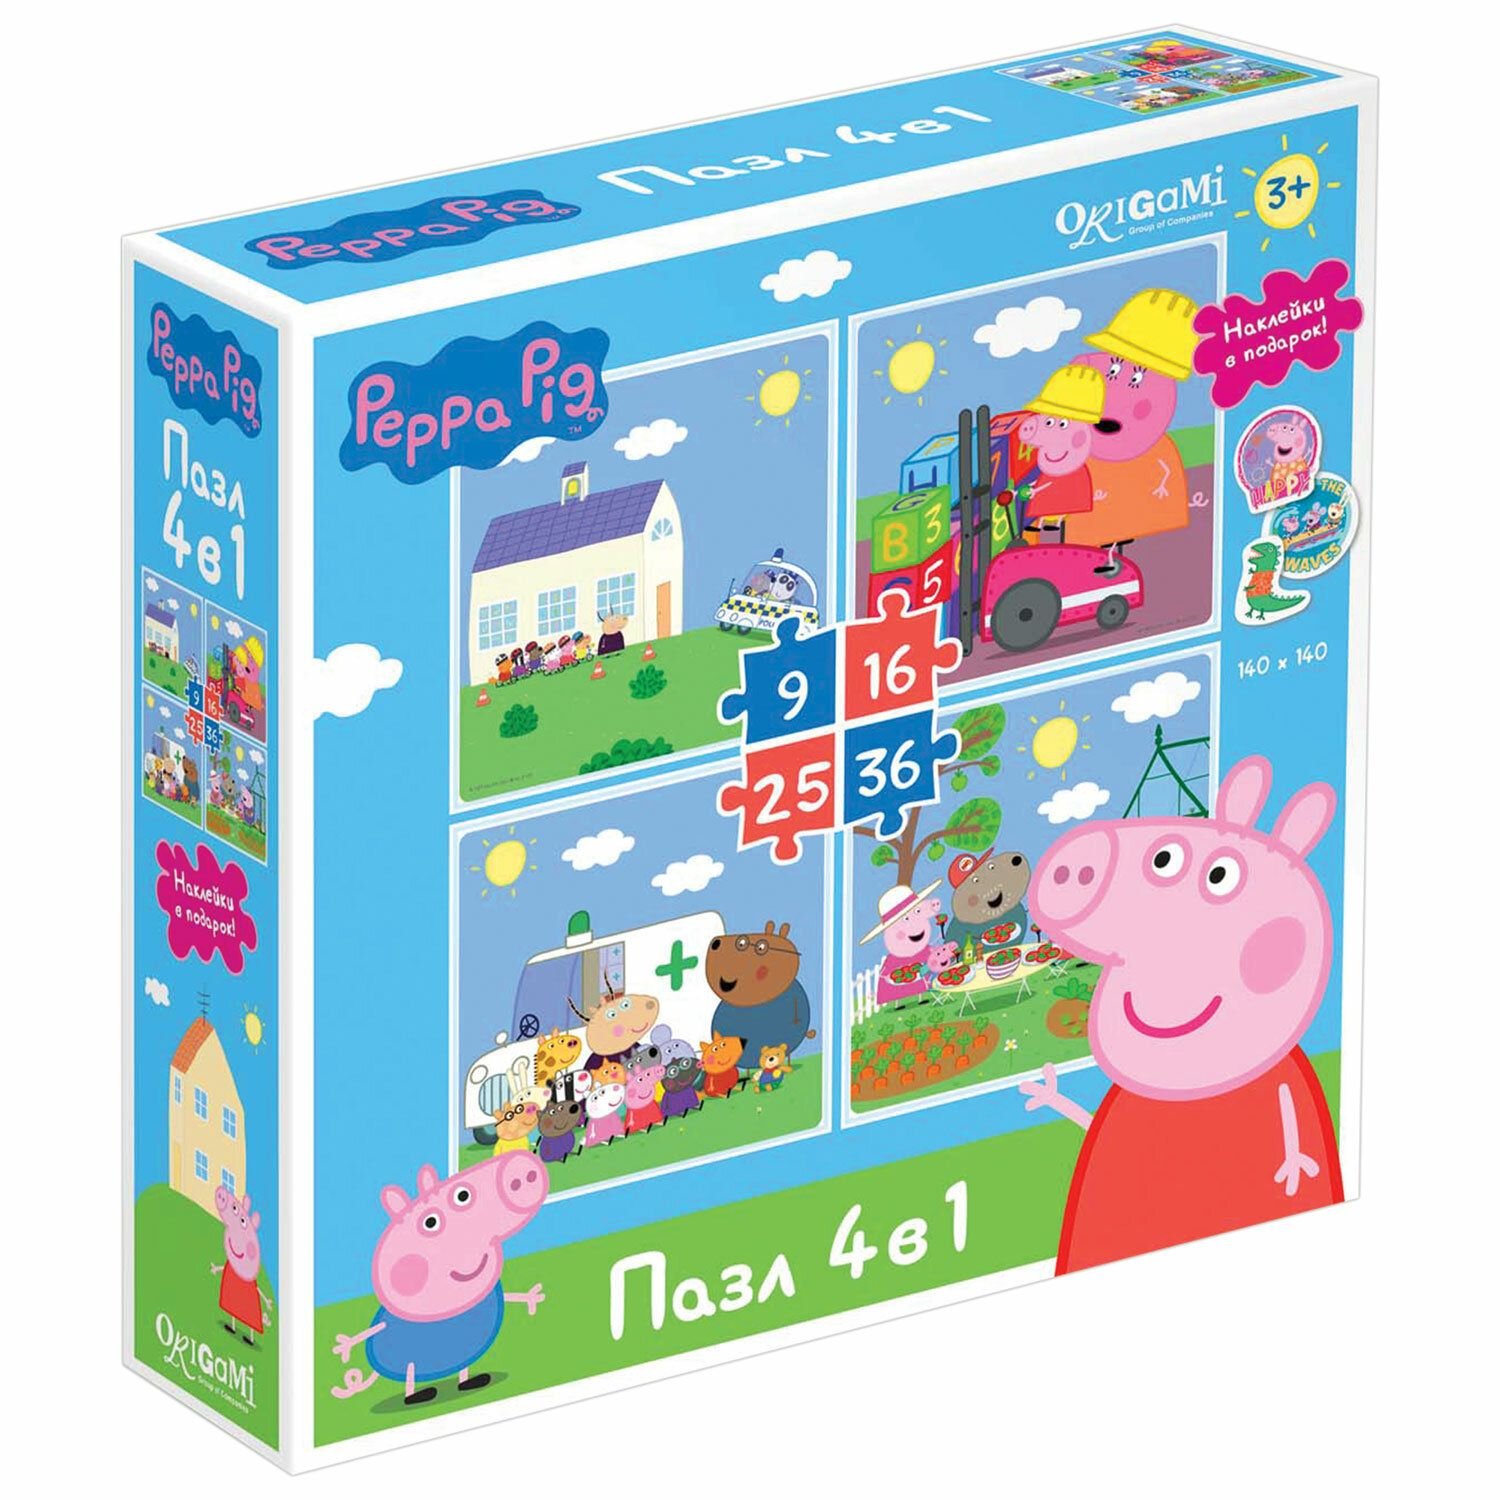 """Puzzle Peppa Pig """"Summer days"""", 4 in 1, 9-16-25-36 elements, ORIGAMI"""